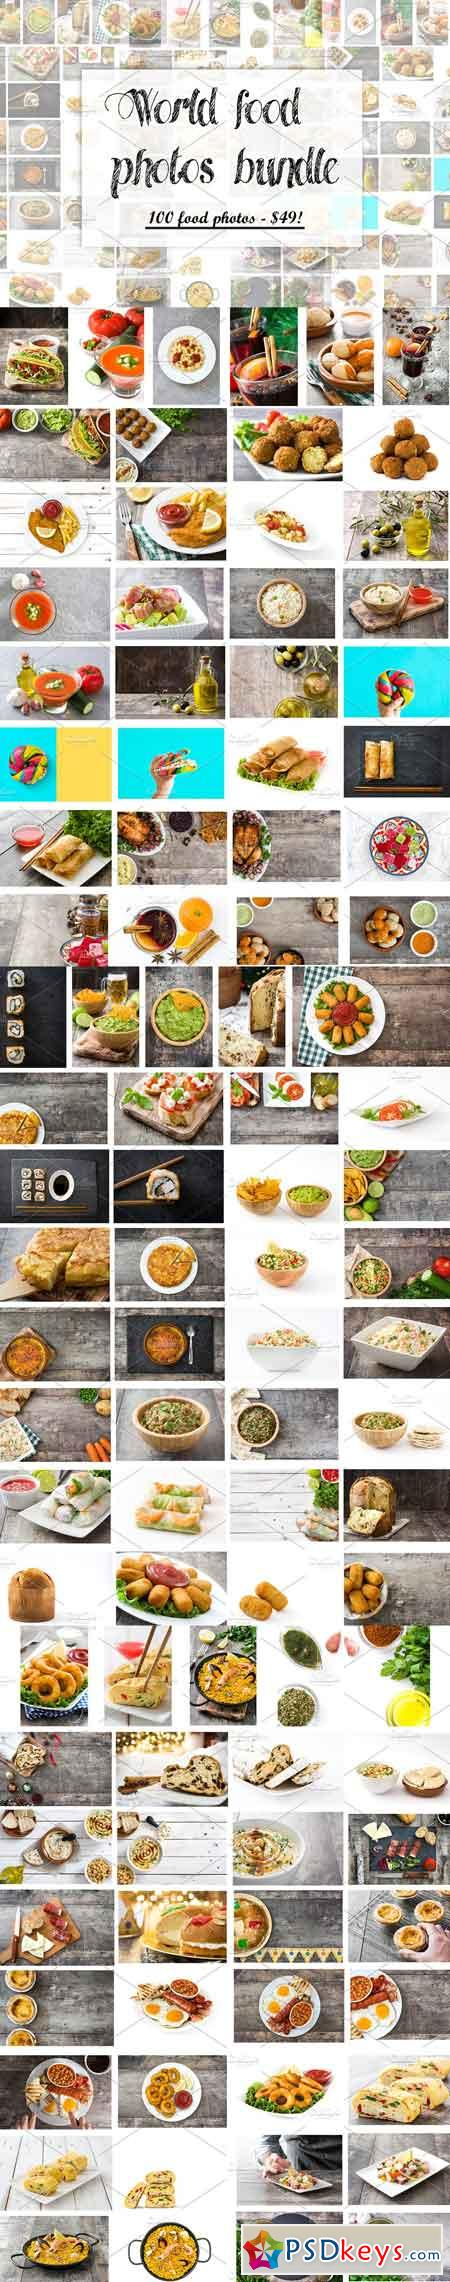 100 world food photos bundle 1486870